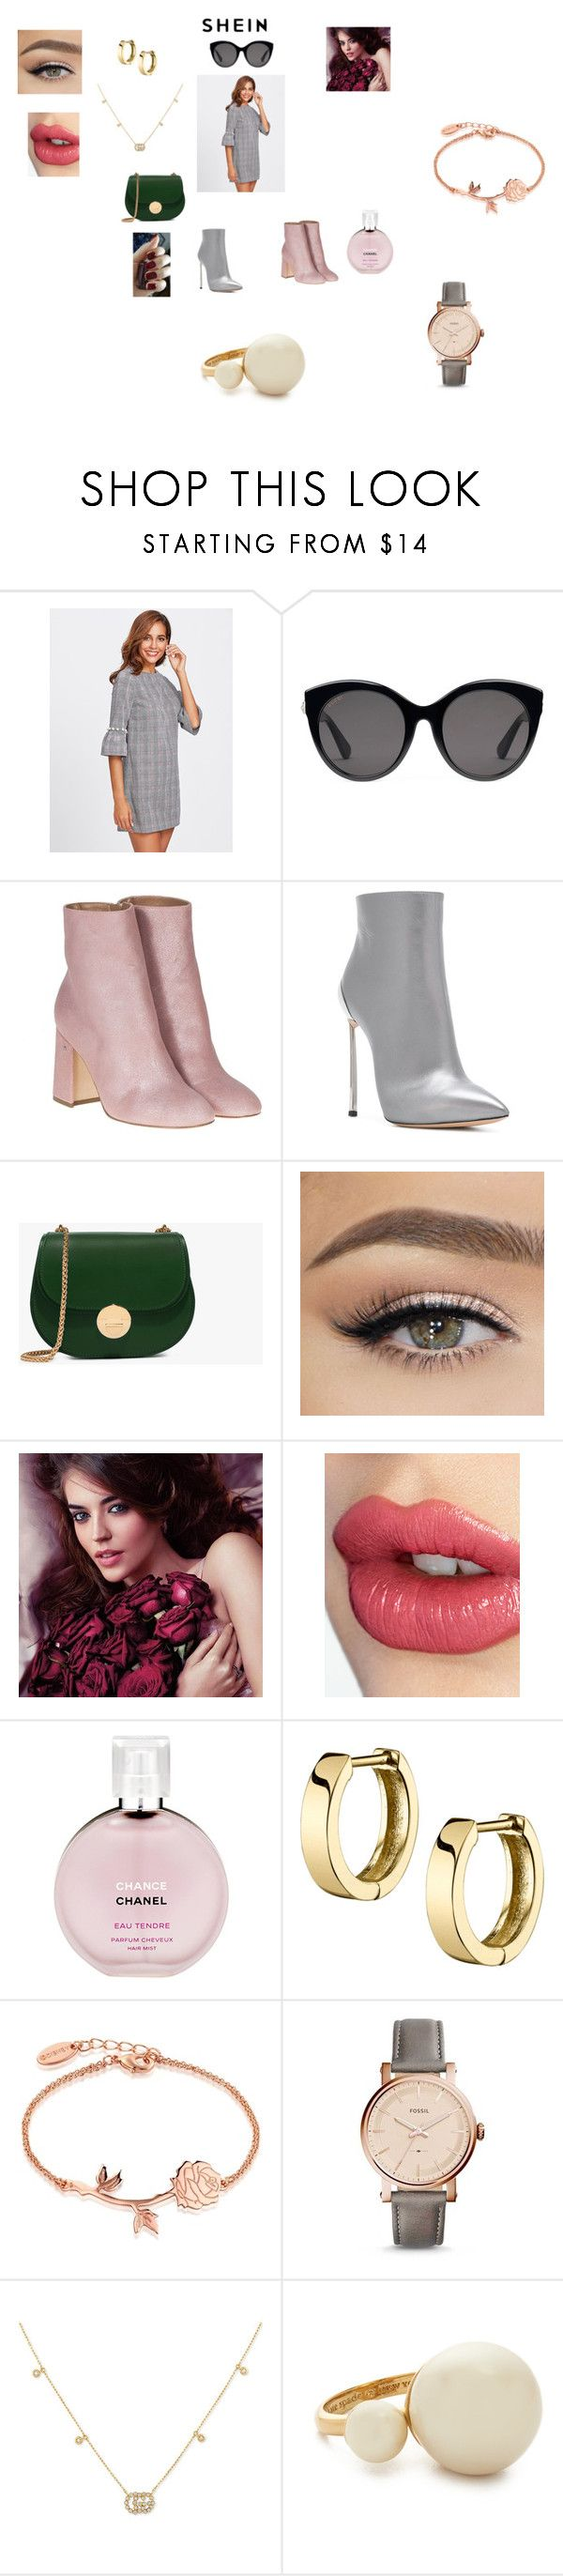 """""""SHEIN - WIN $35 COUPON CODE"""" by annali1983 ❤ liked on Polyvore featuring Gucci, Laurence Dacade, Casadei, Avon, Charlotte Tilbury, Chanel, Disney, FOSSIL and Kate Spade"""